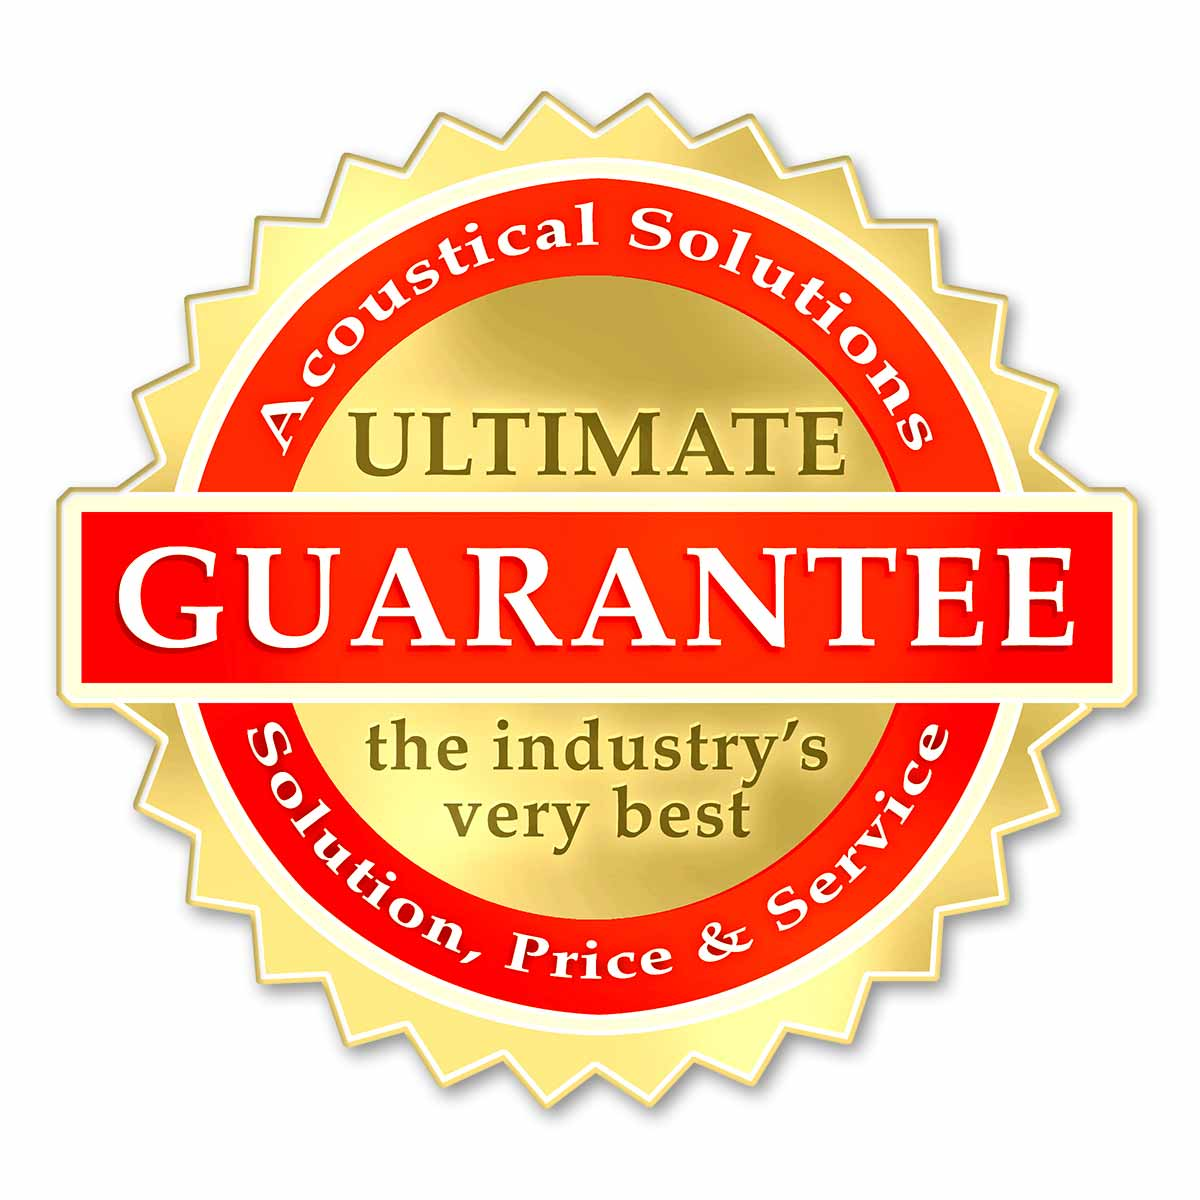 The Ultimate Guarantee